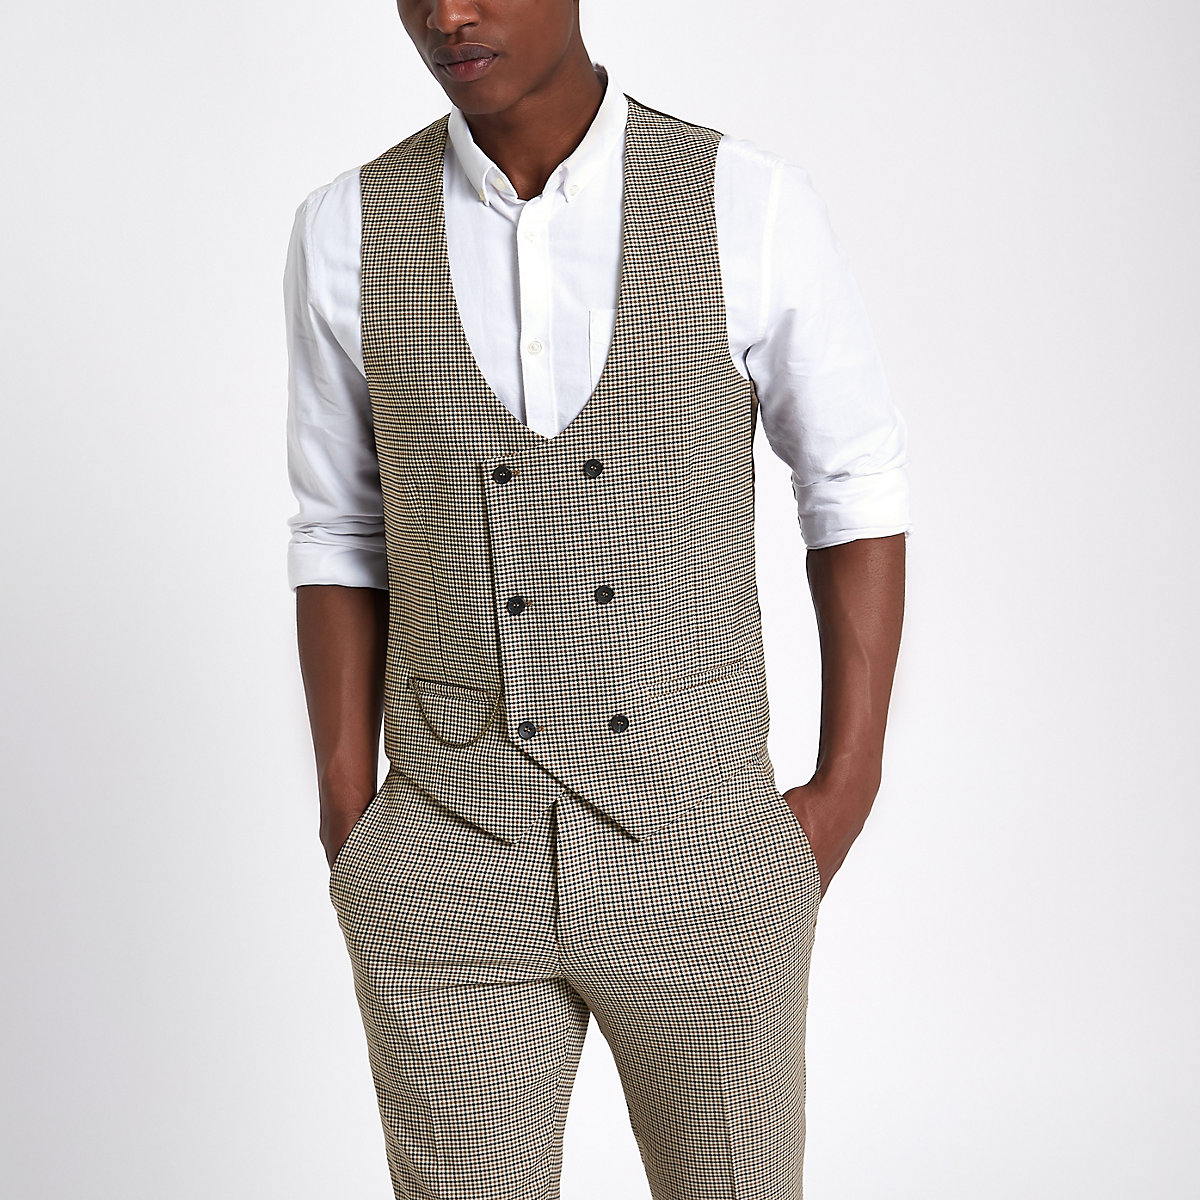 Brown dogstooth check waistcoat - Waistcoats - Suits